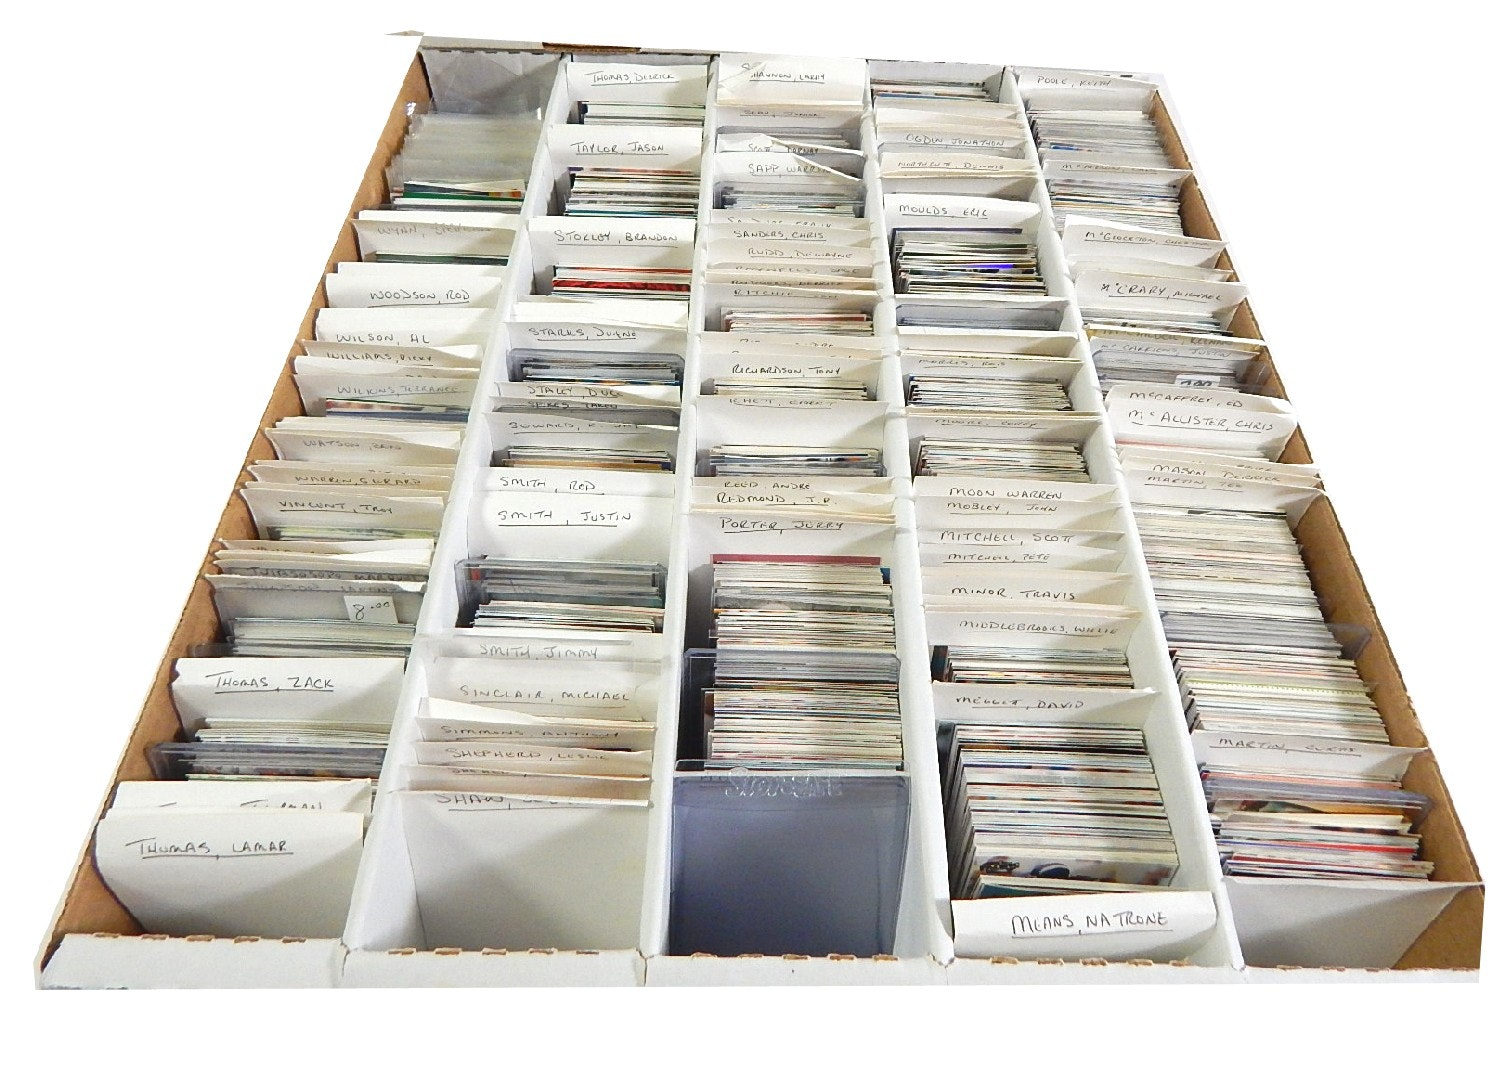 5000 Count Box of AFC Football Players Cards from 1990s -Several 1000 Card Count